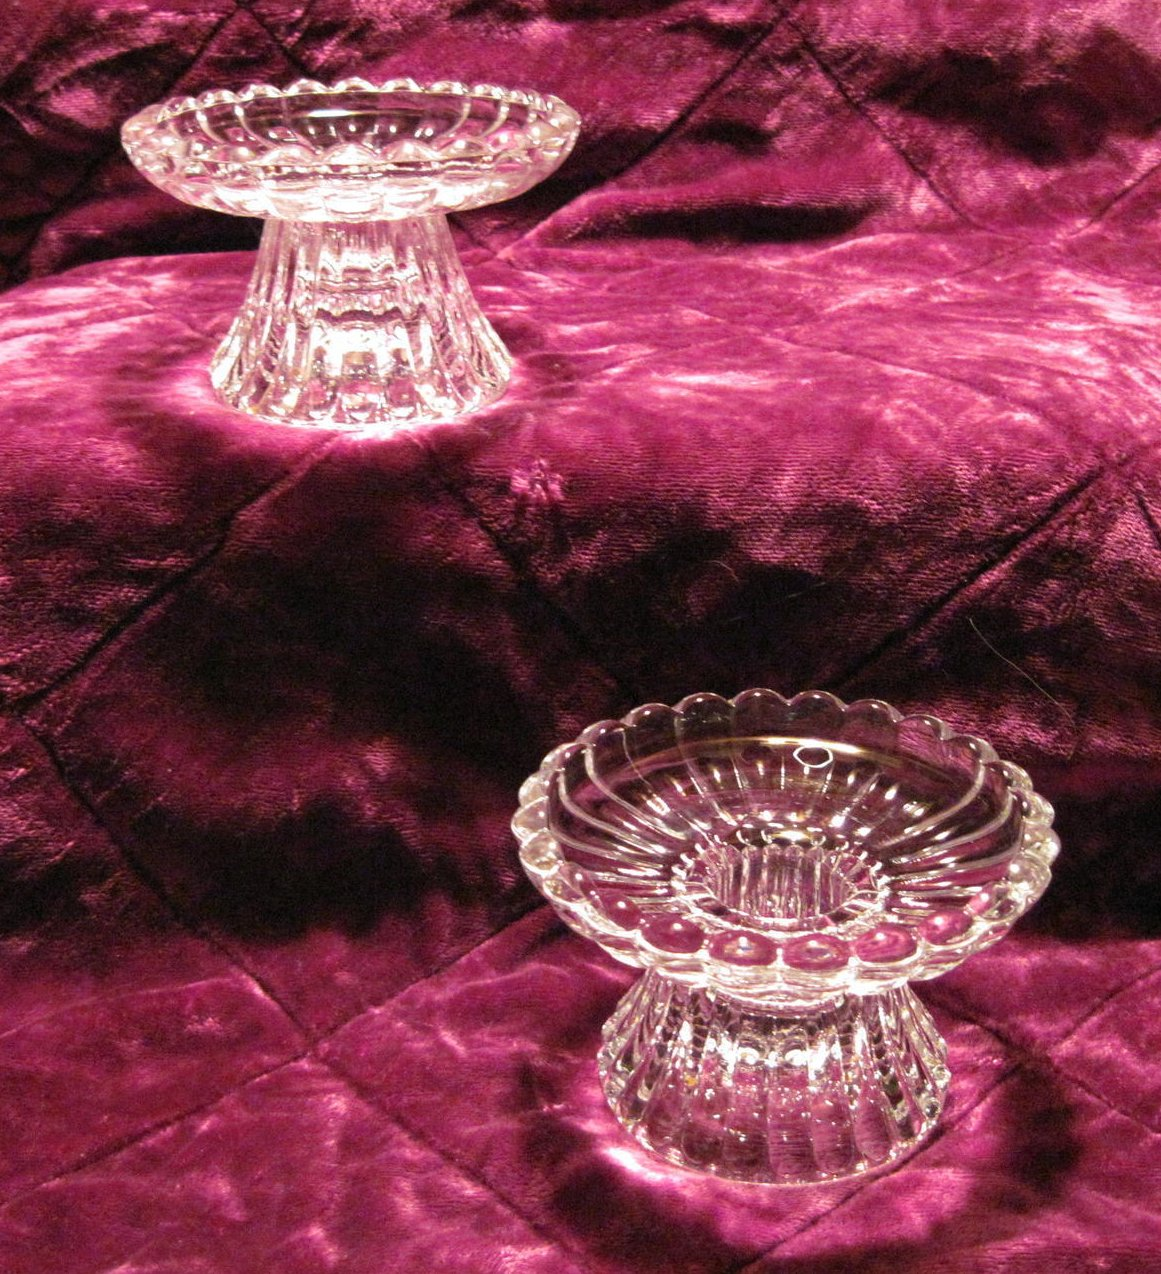 Scalloped Crystal Candle Holders for Votives or Candlesticks